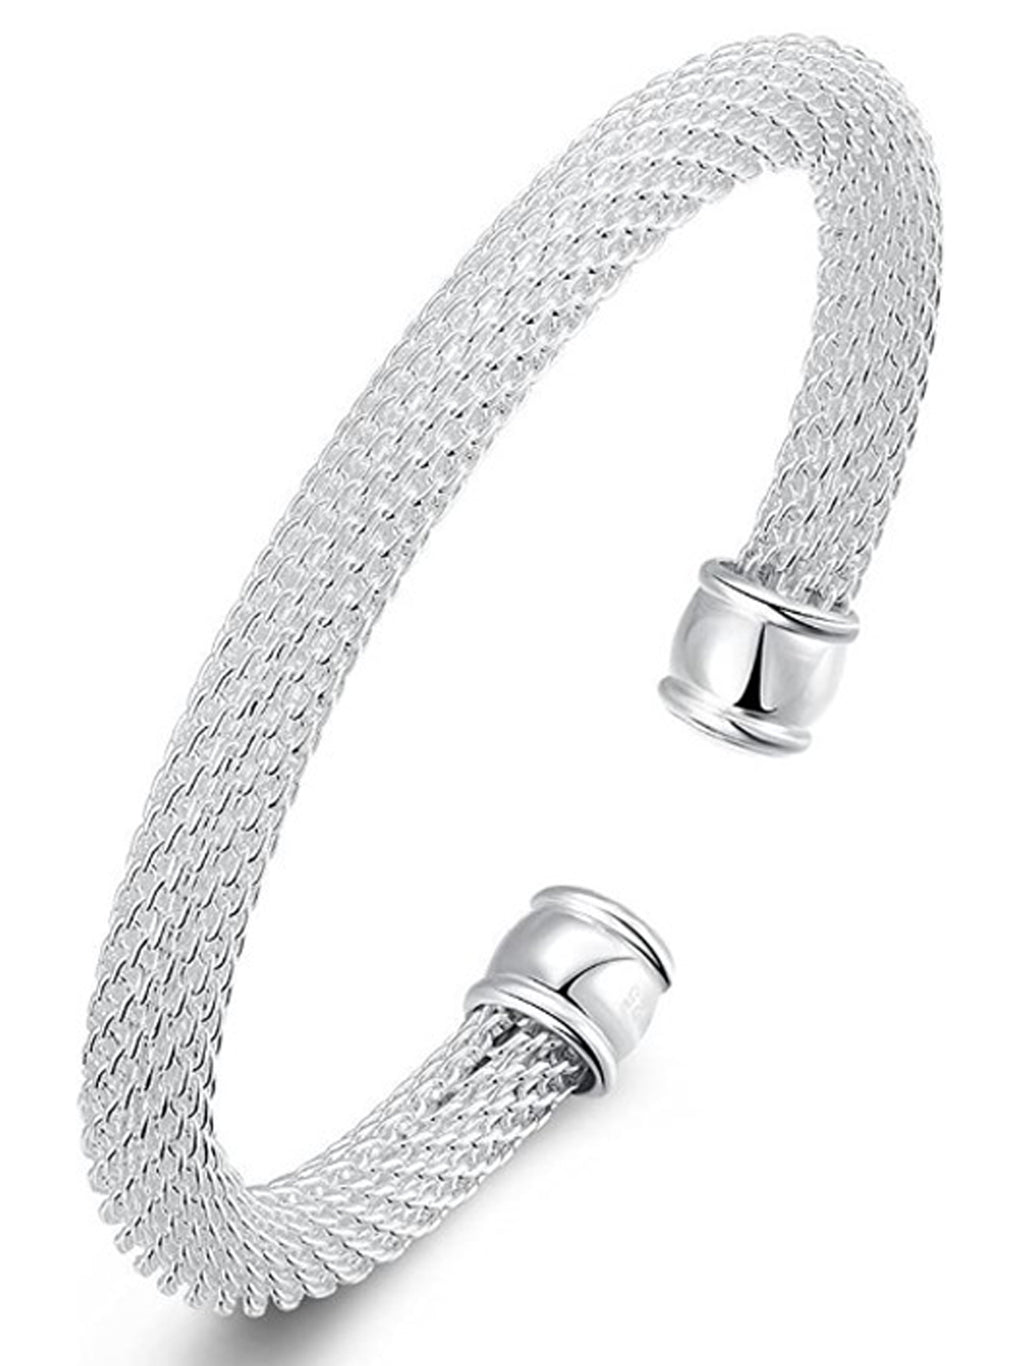 Sterling Silver Plated Mesh Rope Bangle Cuff Bracelet